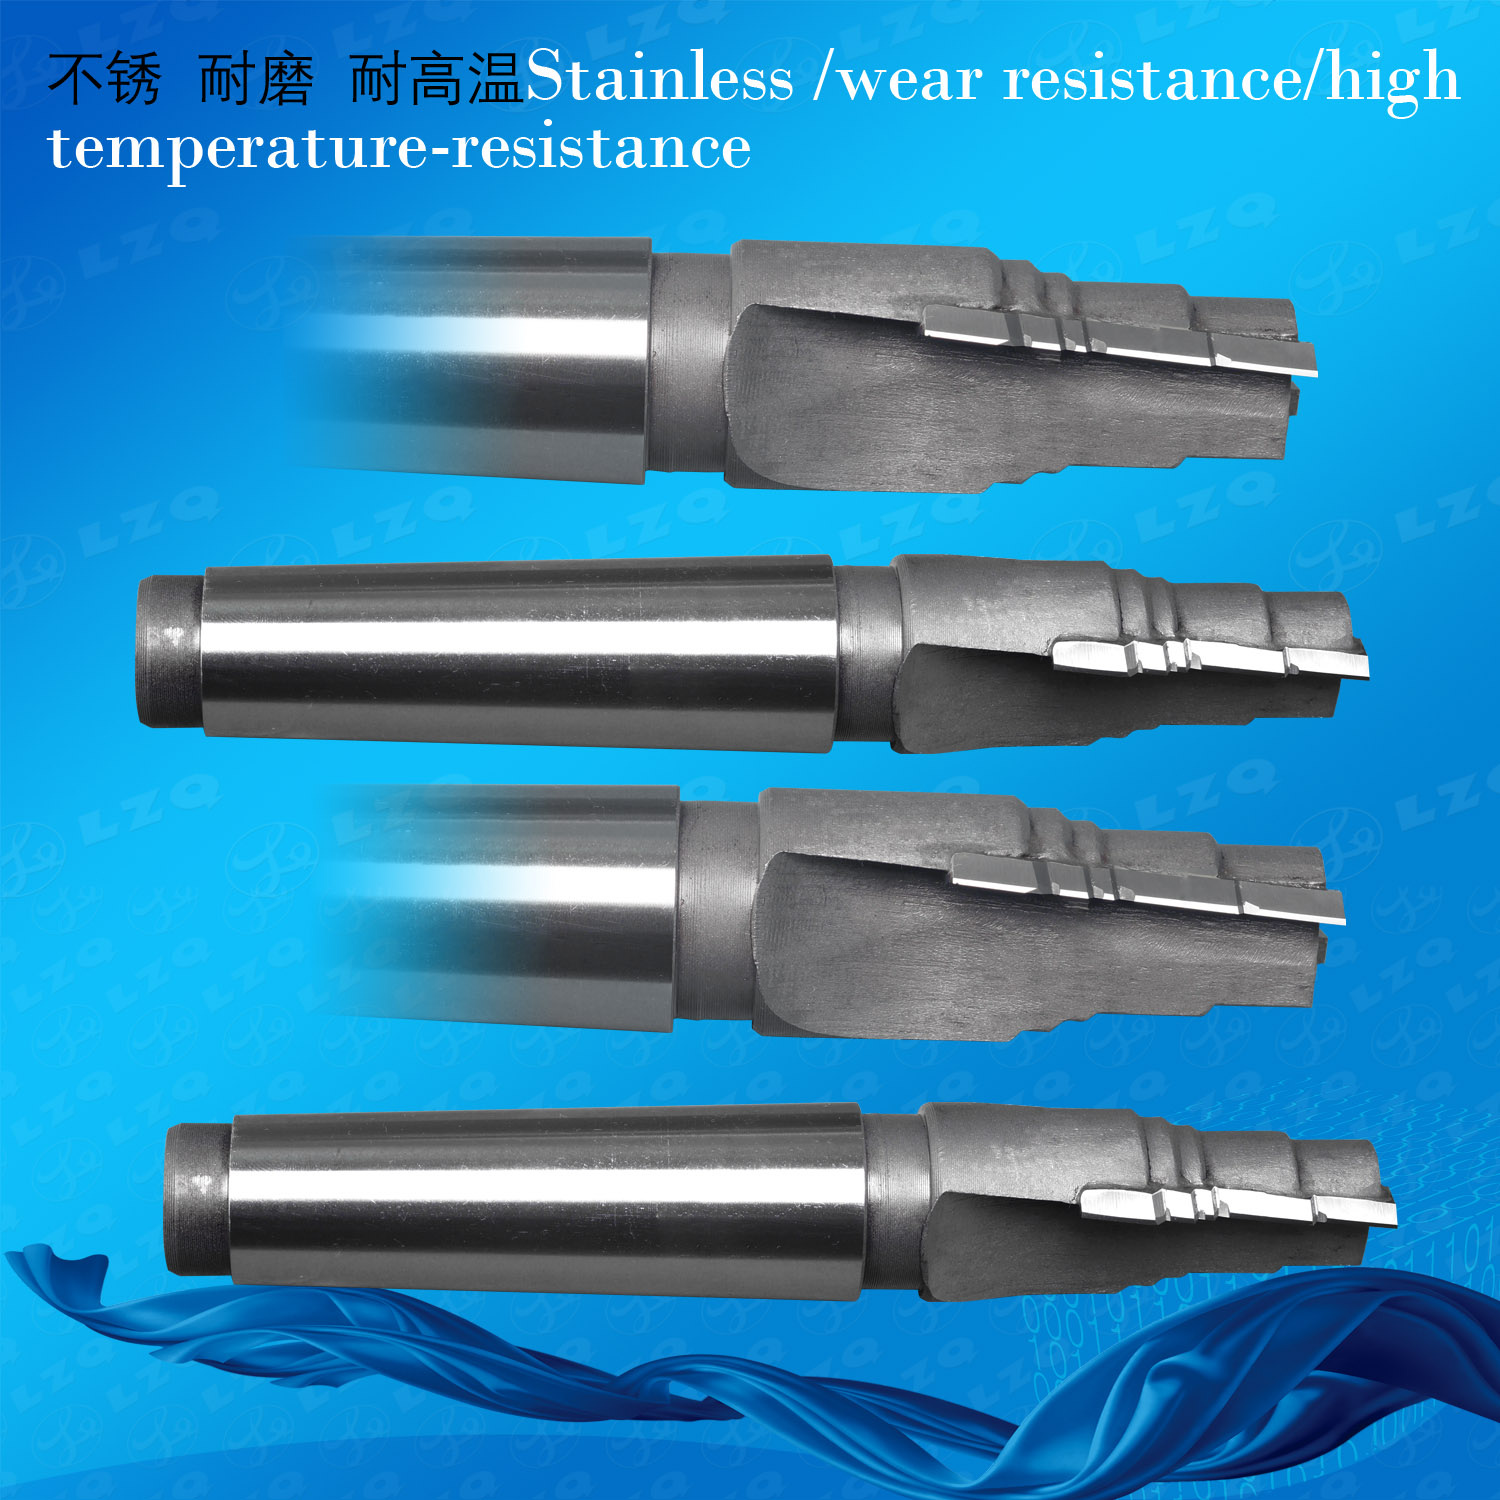 Step Drill, HSSE, Forming Drill, Powder Cobalt High Speed Steel